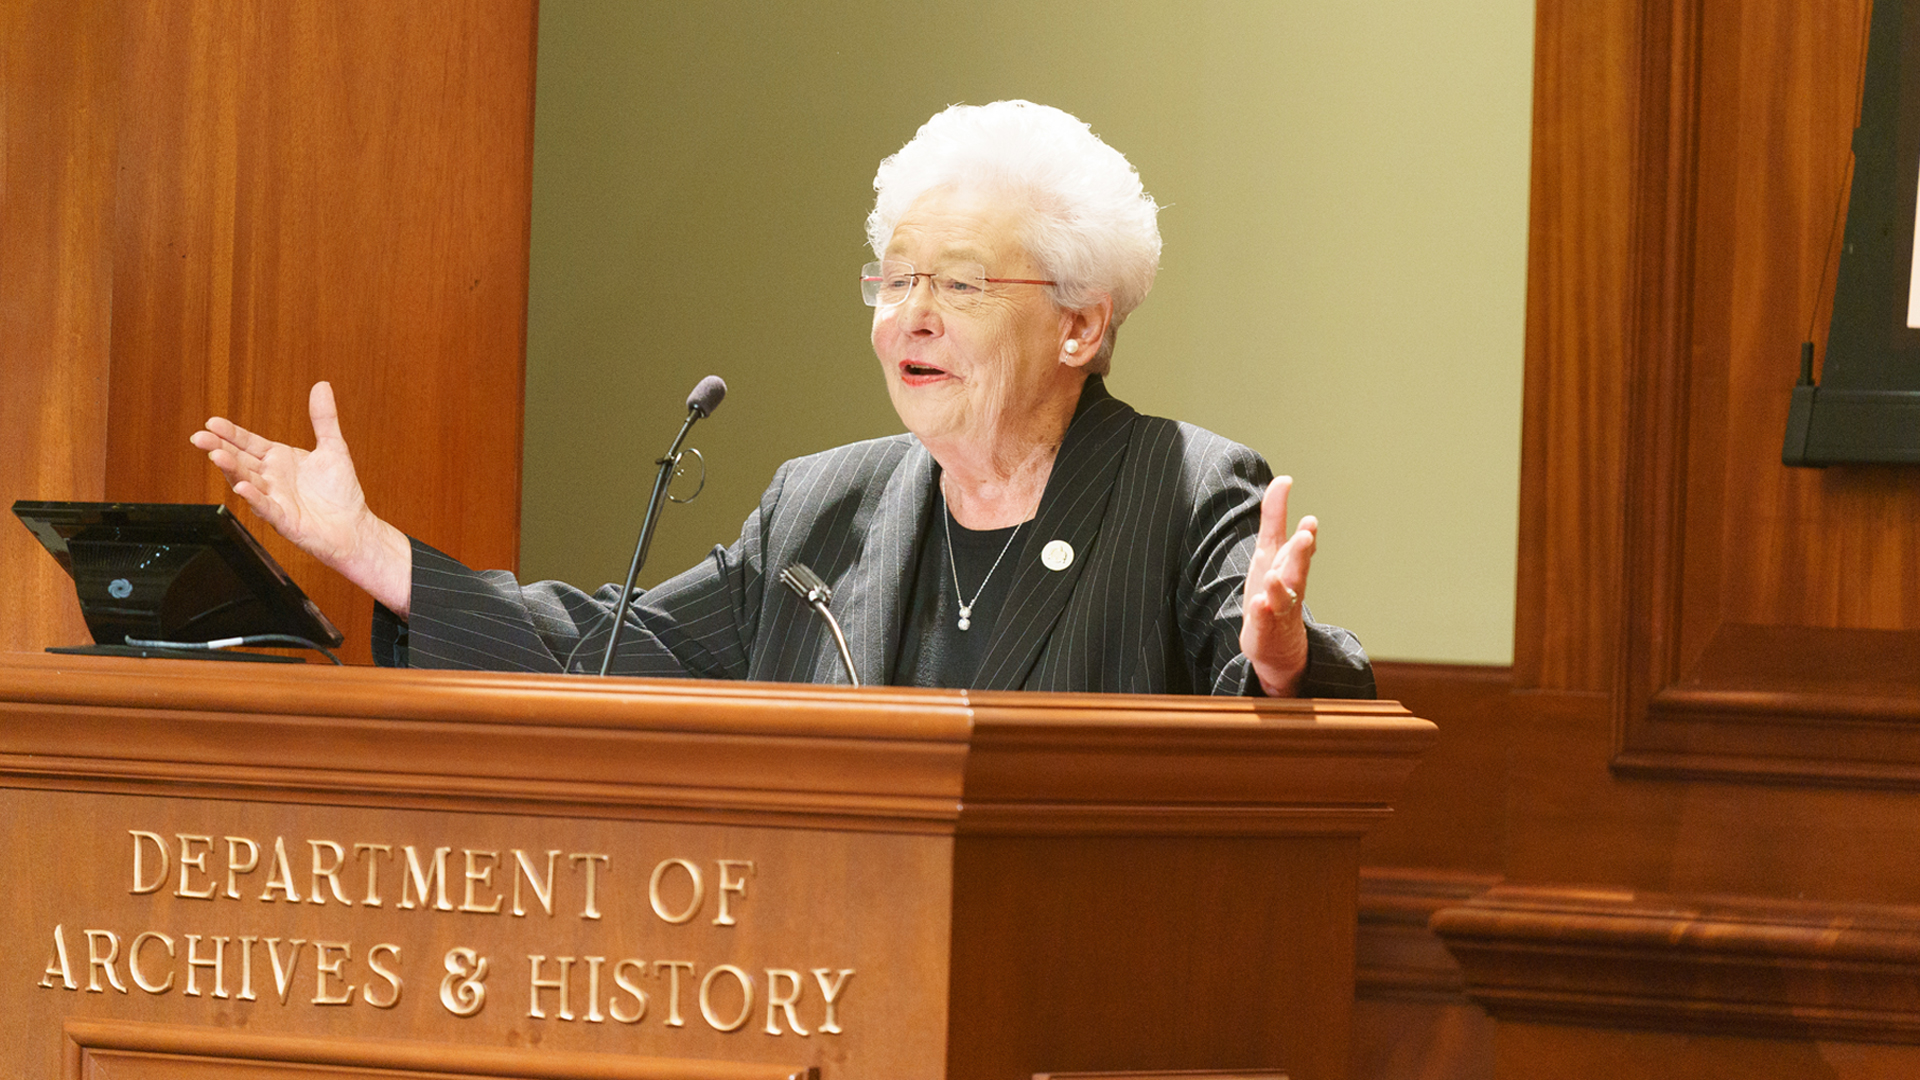 Alabama Gov. Kay Ivey speaks at an event at the Alabama Department of Archives and History in Montgomery on Sept. 3, 2019, in a photo released by her office.